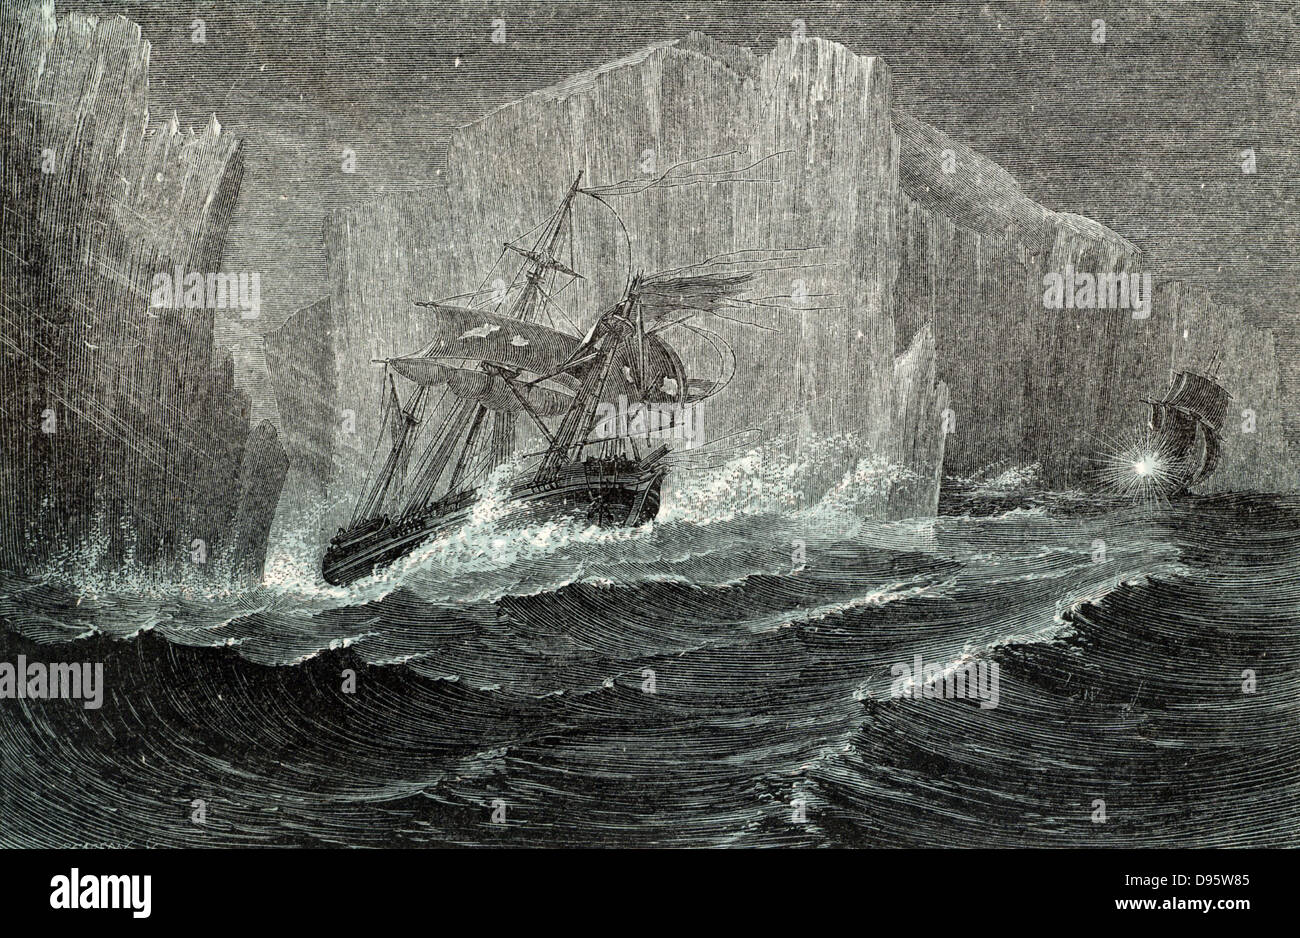 The 'Erebus' and the 'Terror' Among Icebergs. Sir John Franklin (1786-1847) British naval officer - Stock Image